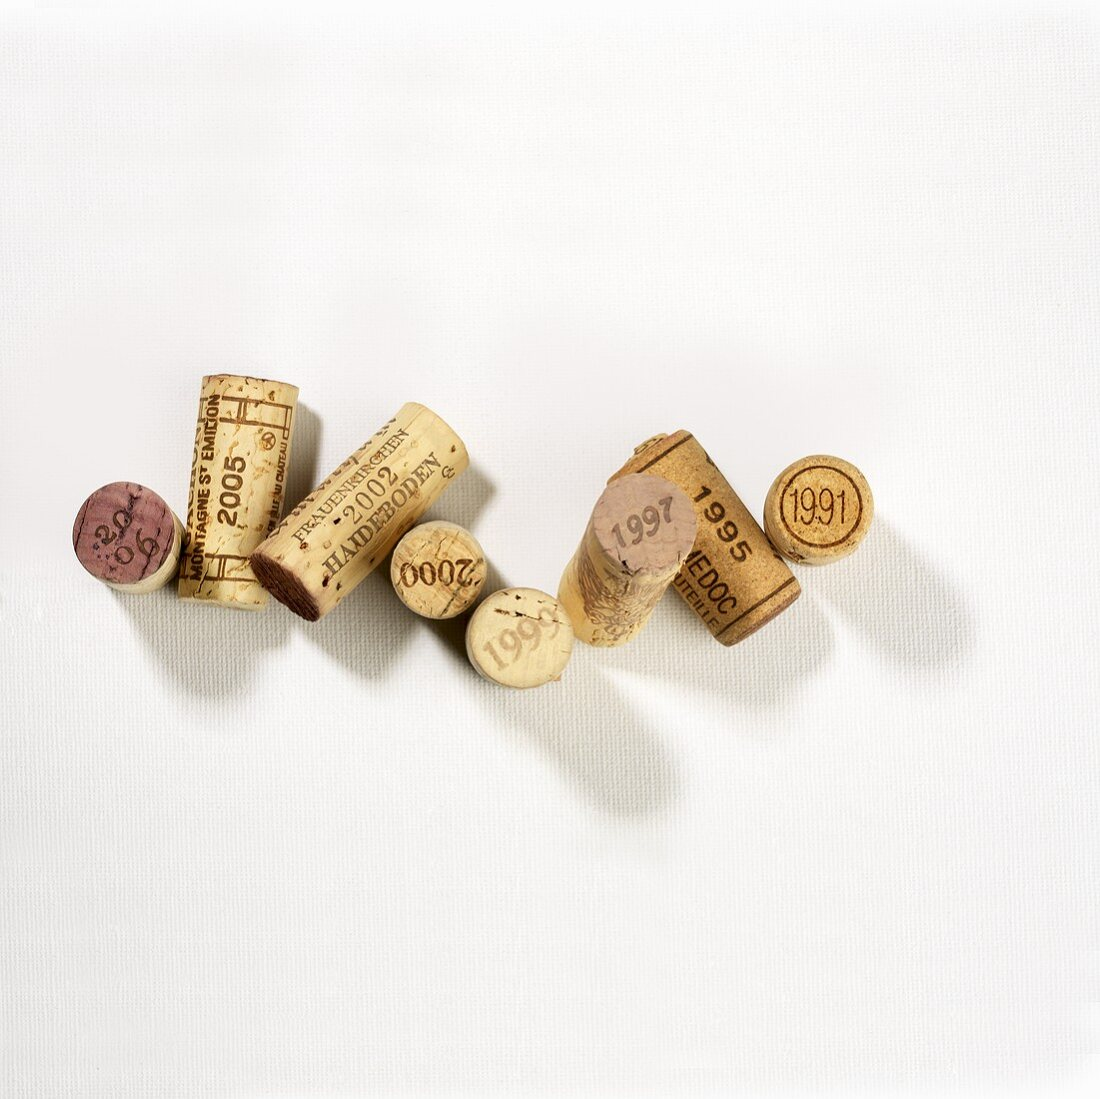 Various corks featuring years